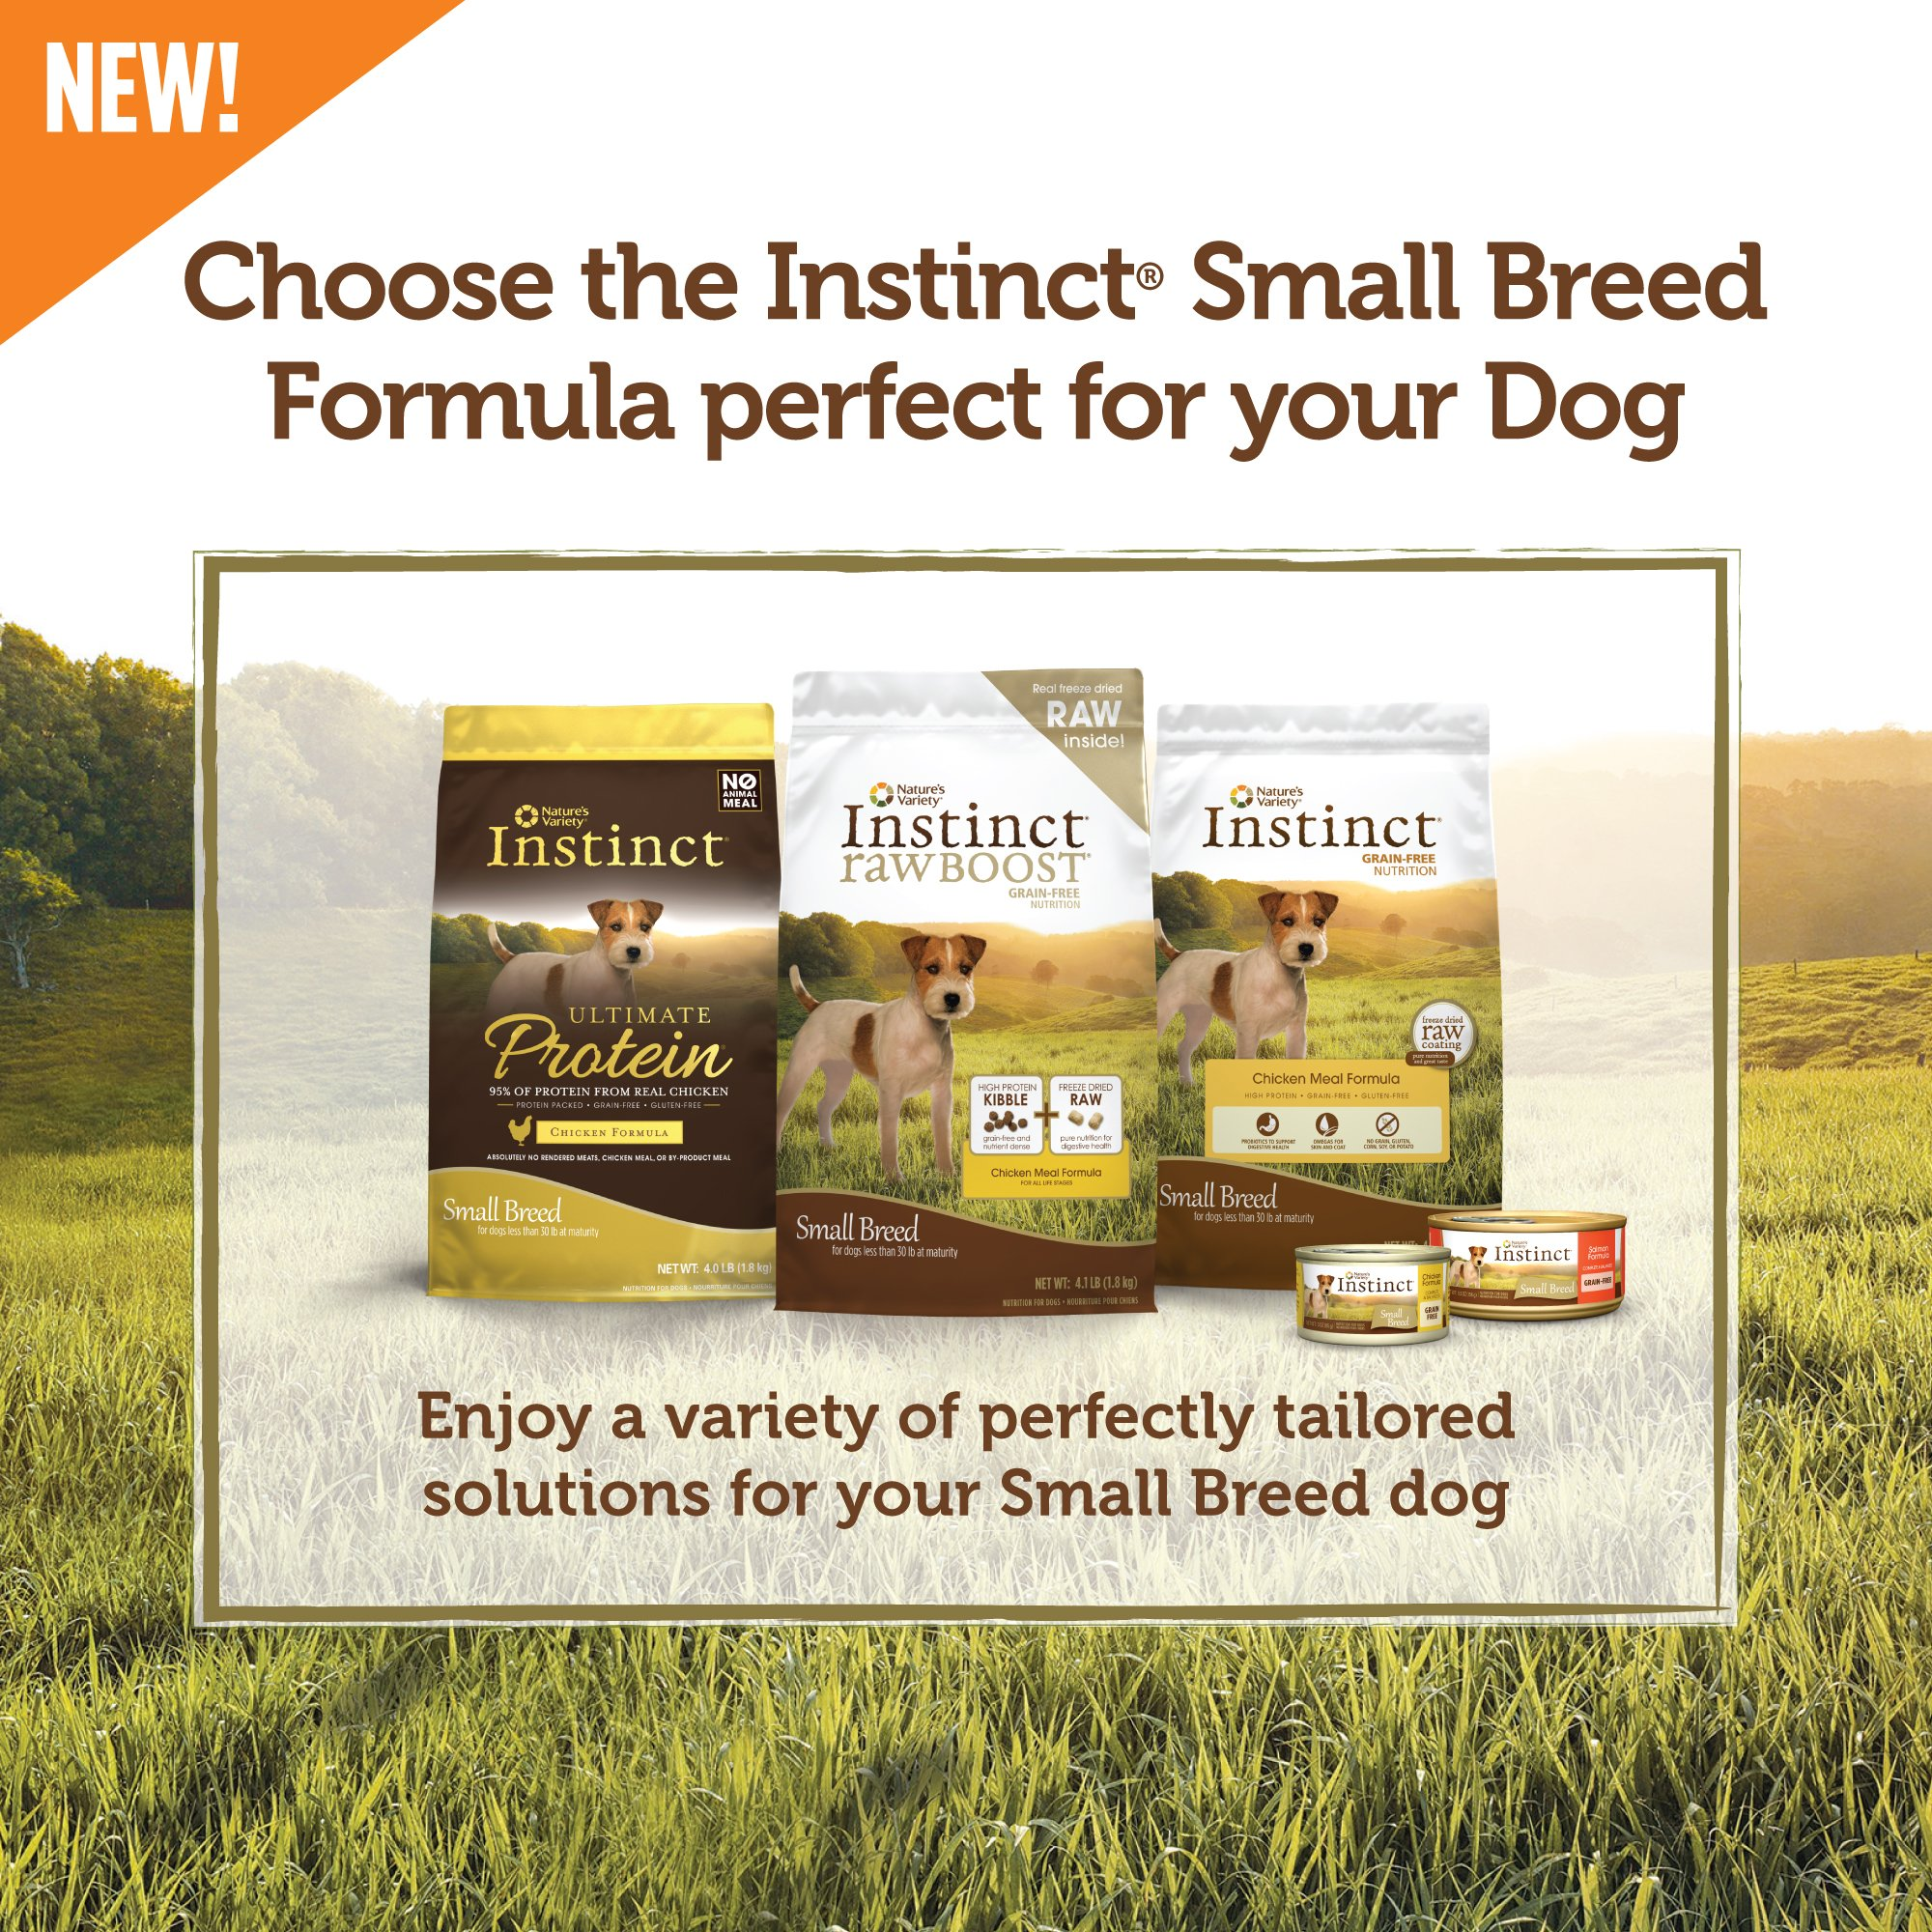 Instinct Original Small Breed Grain Free Chicken Meal Formula Natural Dry Dog Food by Nature's Variety, 4.4 lb. Bag by Nature's Variety (Image #5)